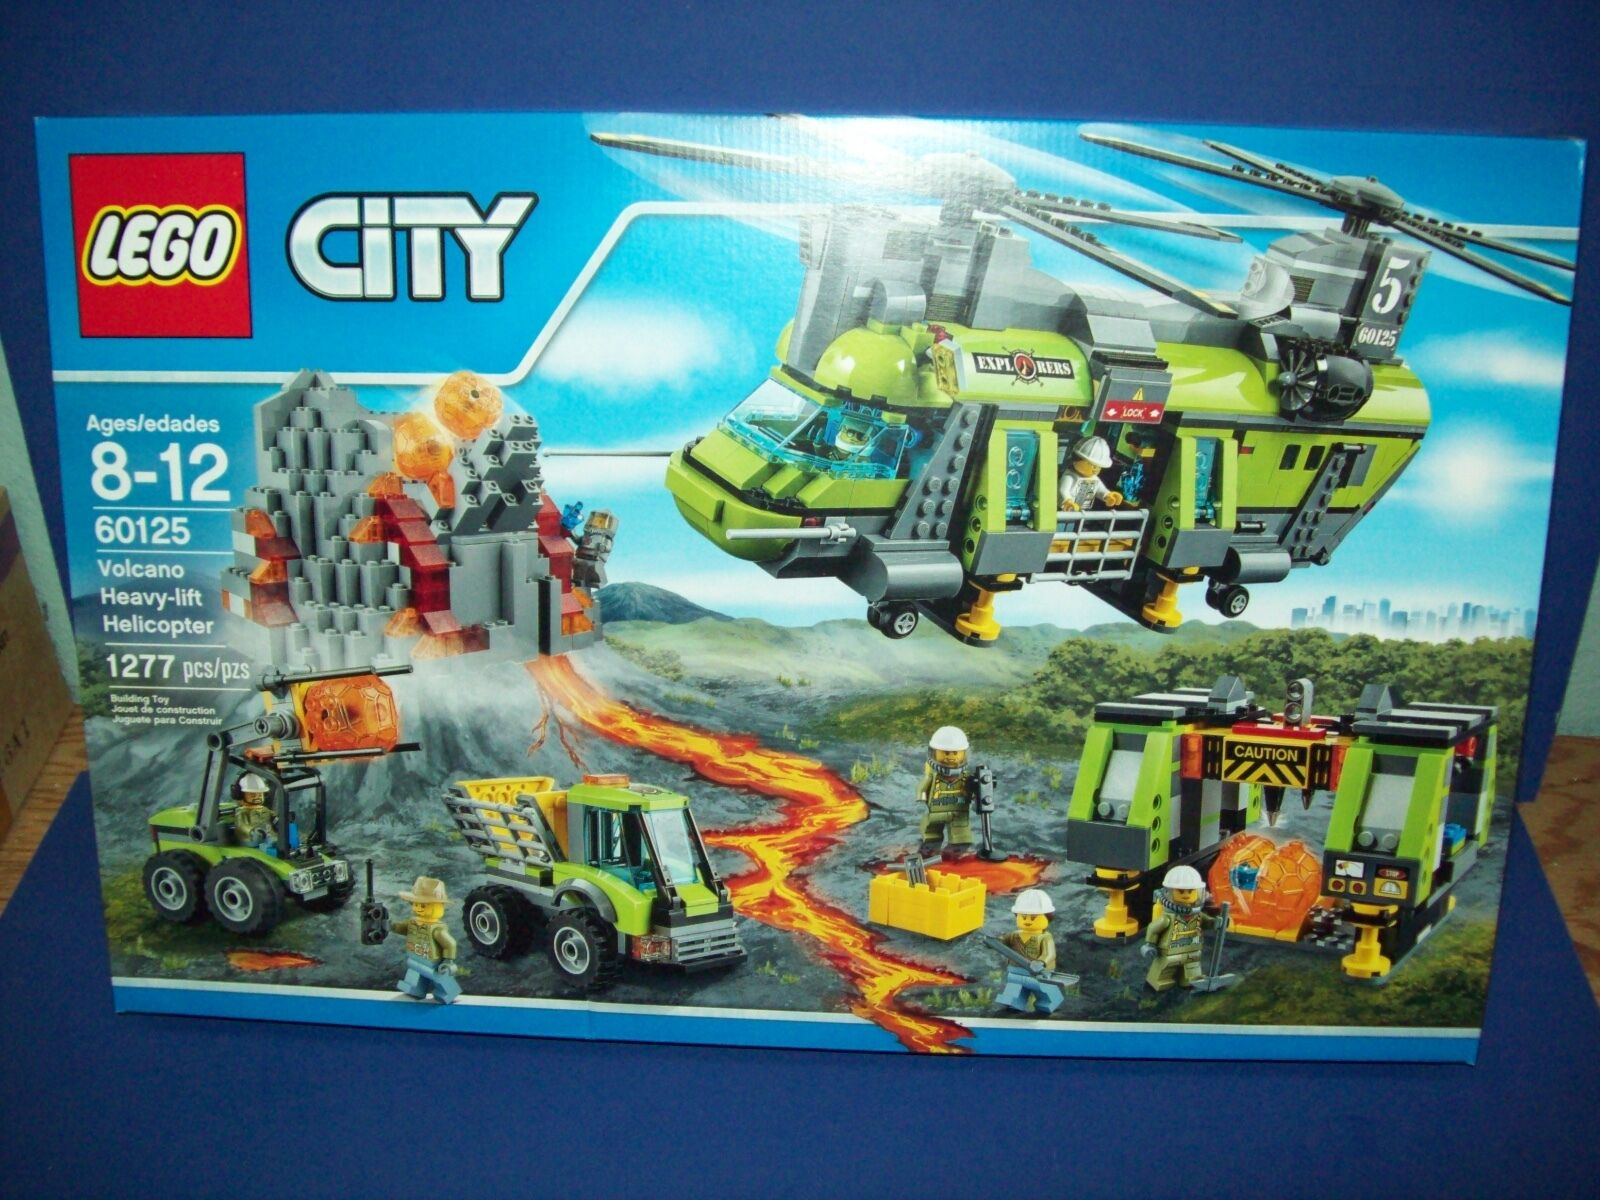 LEGO City 60125 VOLCANO HEAVY-LIFT HELICOPTER 1277 pcs New Sealed 8 mini figure